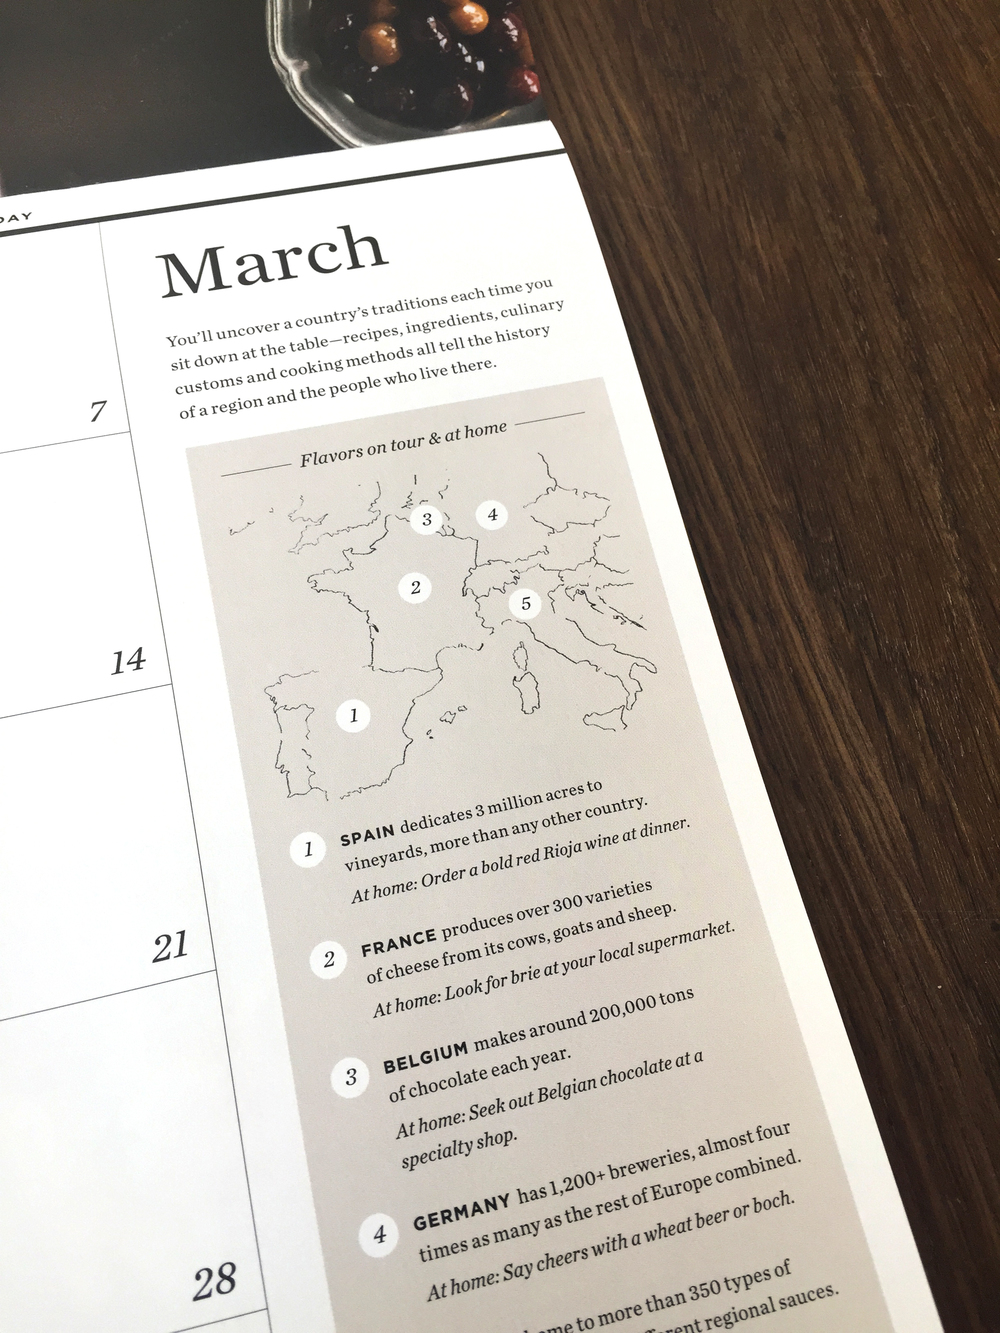 Each month featured additional content tailored to the theme. For the month of March, we celebrated flavor by focusing on regional tastes from the 5 countries we visit on our Food & Wine tours.